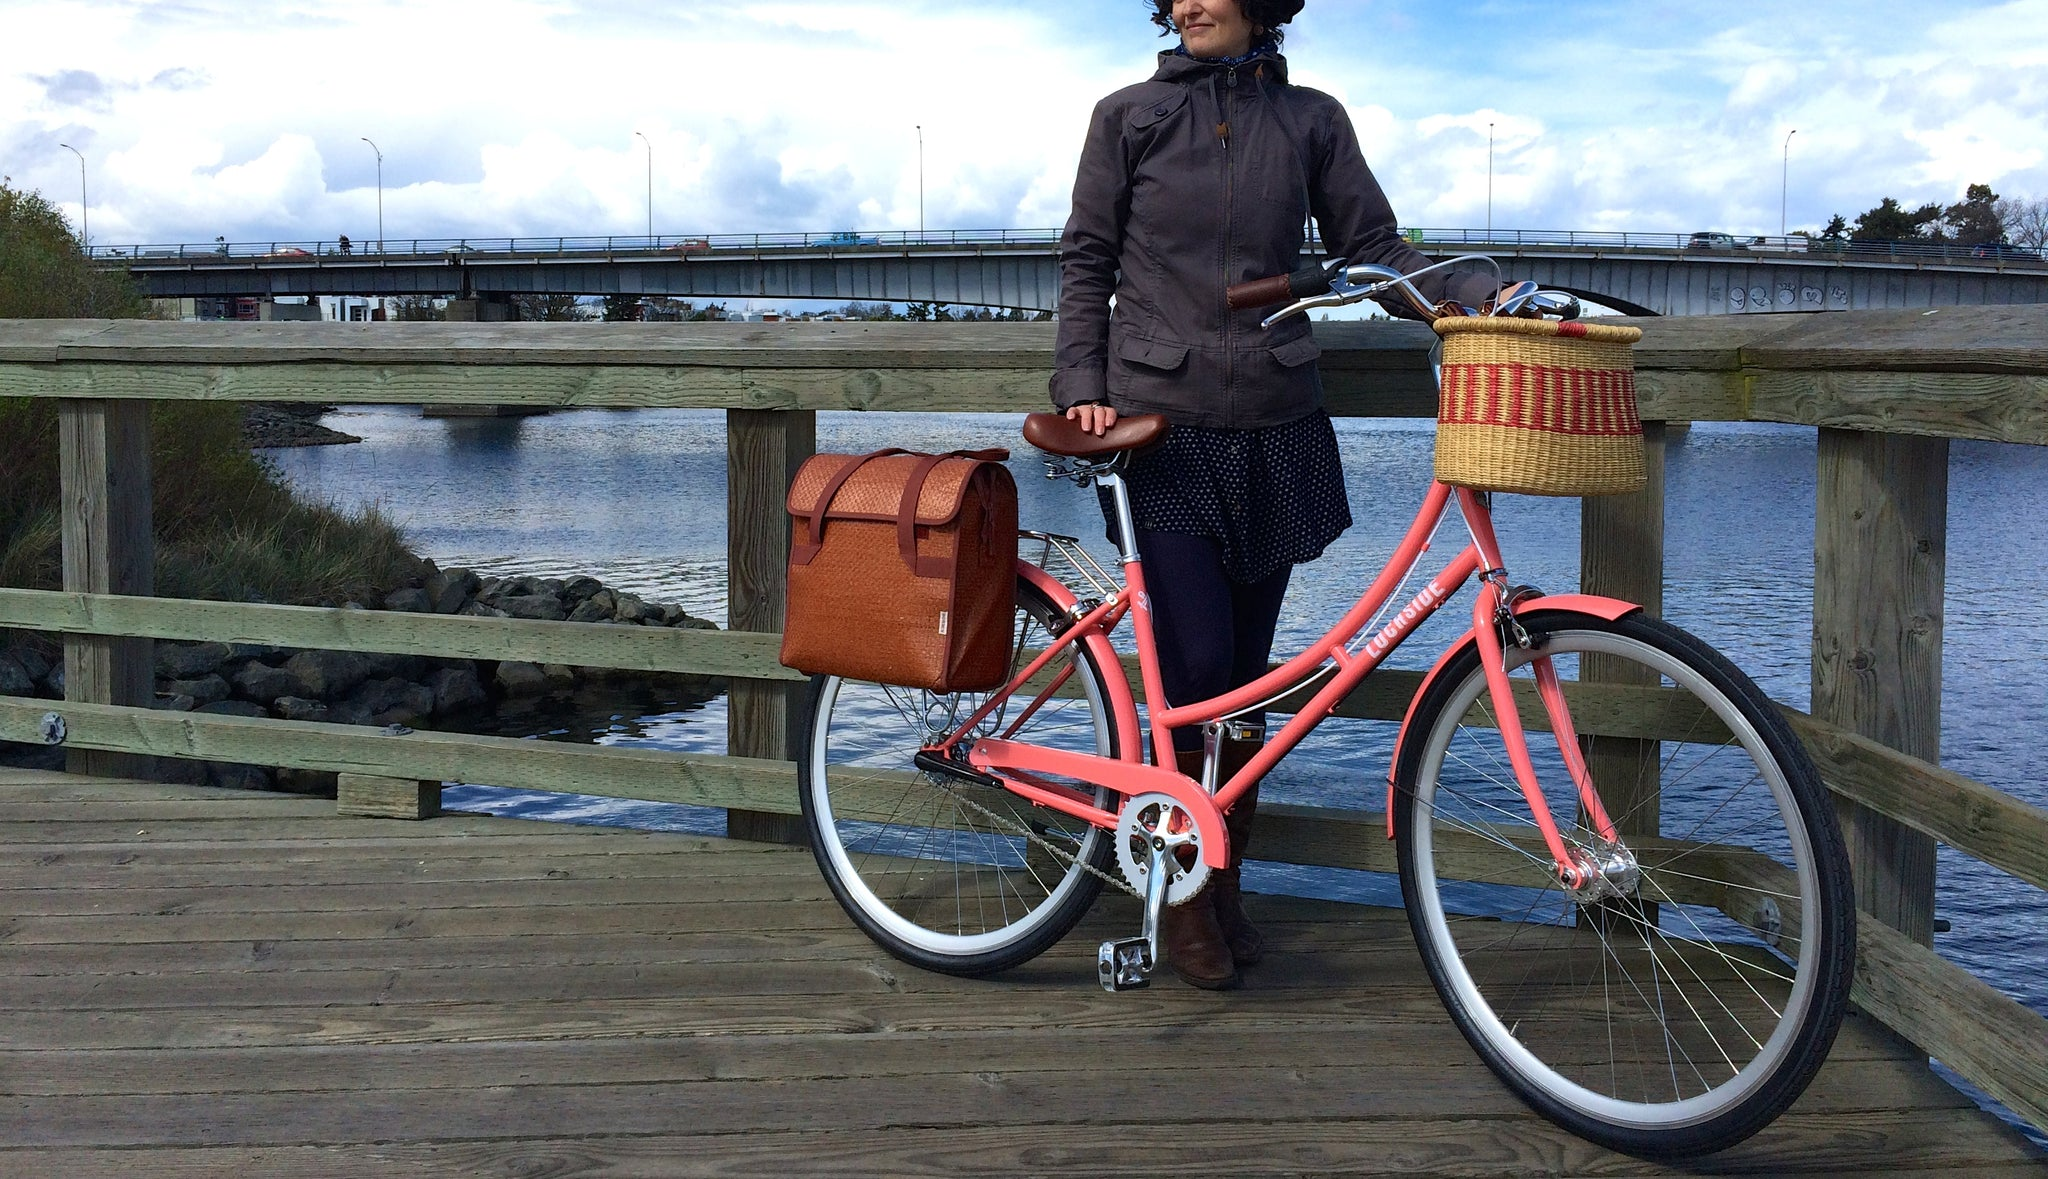 Le Vélo Victoria Bicycle Review of Lochside Cycles Ariel with Bobbin Pannier and House of Talents Bicycle basket available at Le Vélo Victoria